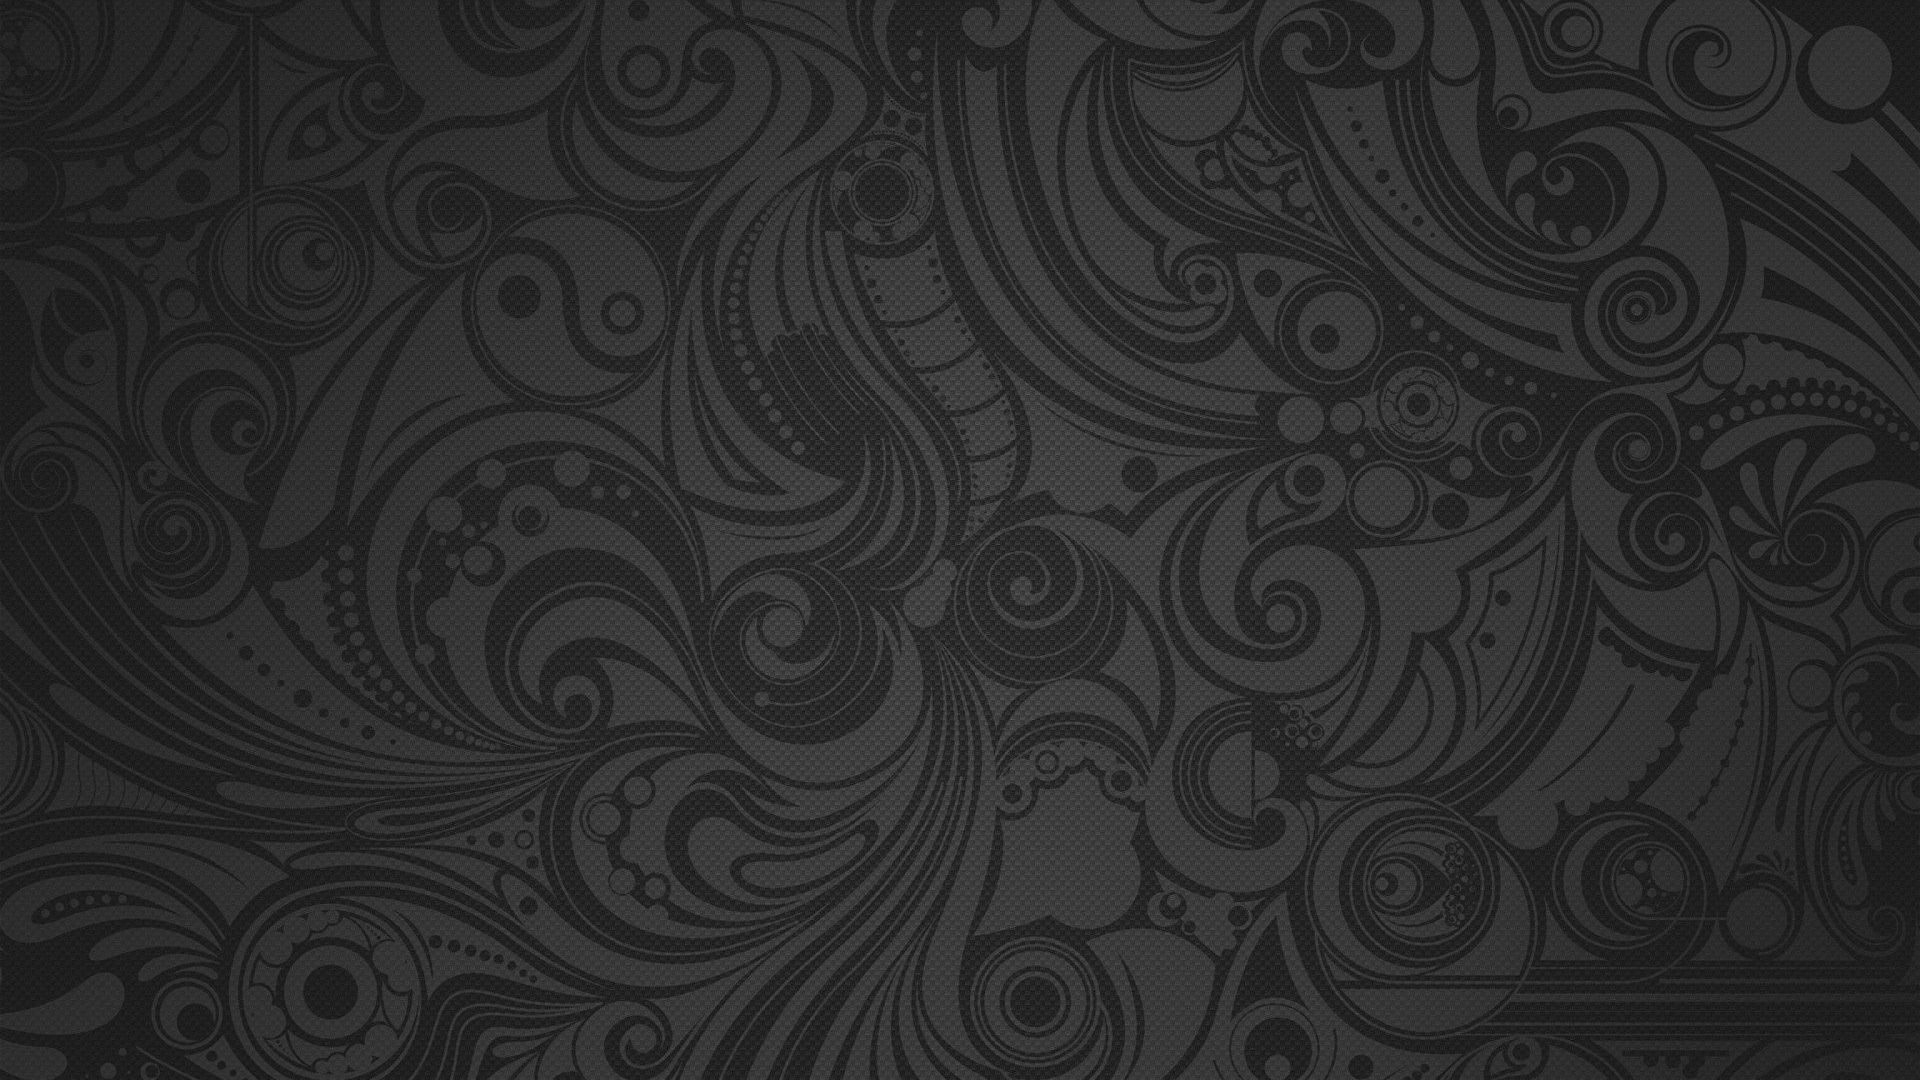 Gray Swirls Abstract HD Wallpaper HD Wallpapers Background